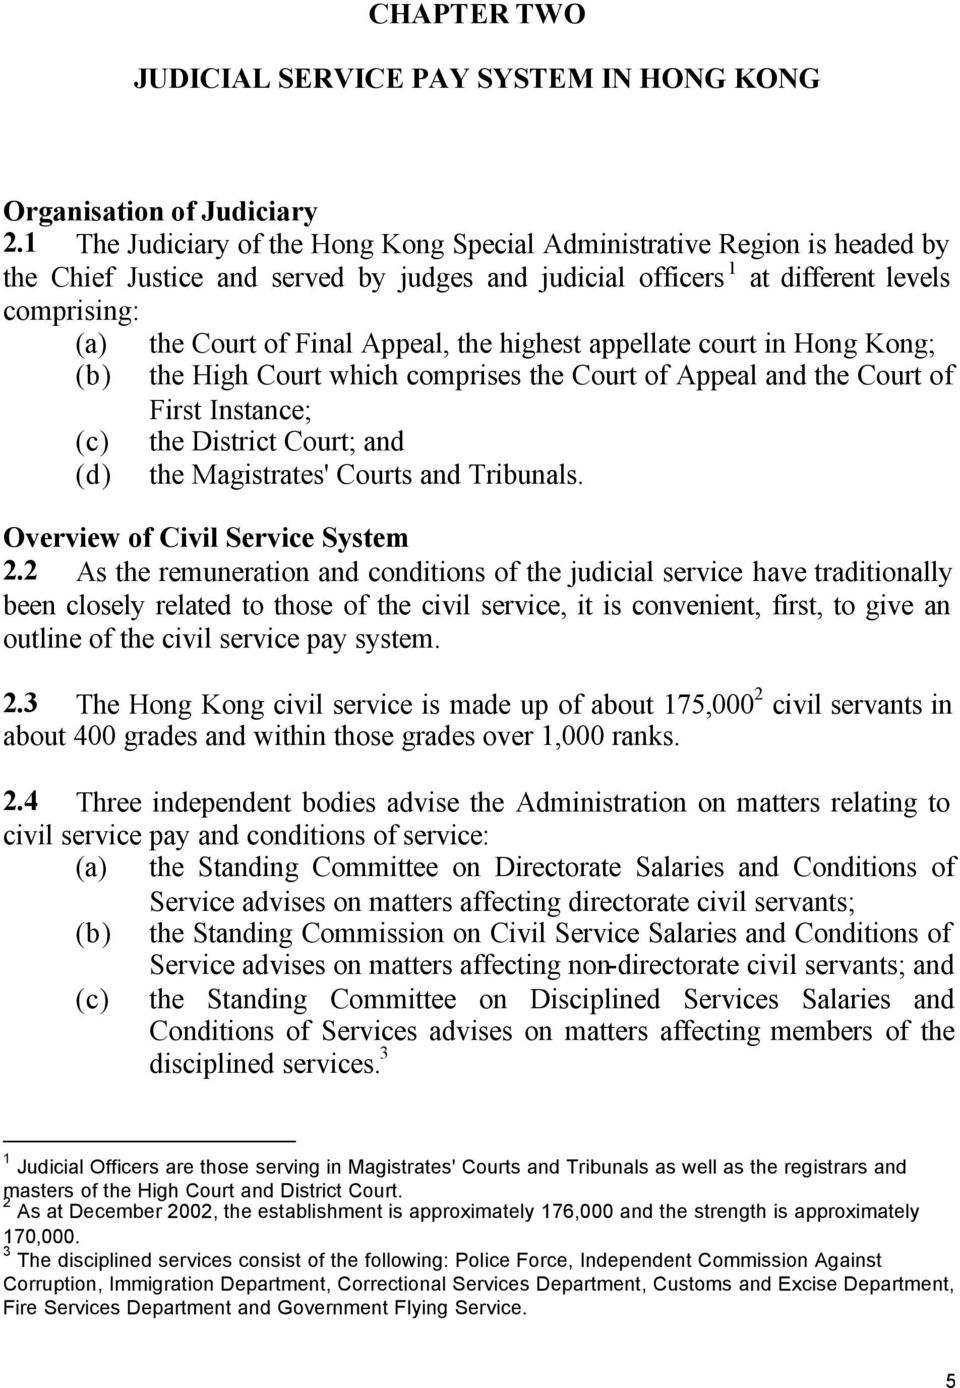 Appeal, the highest appellate court in Hong Kong; (b) the High Court which comprises the Court of Appeal and the Court of First Instance; (c) the District Court; and (d) the Magistrates' Courts and